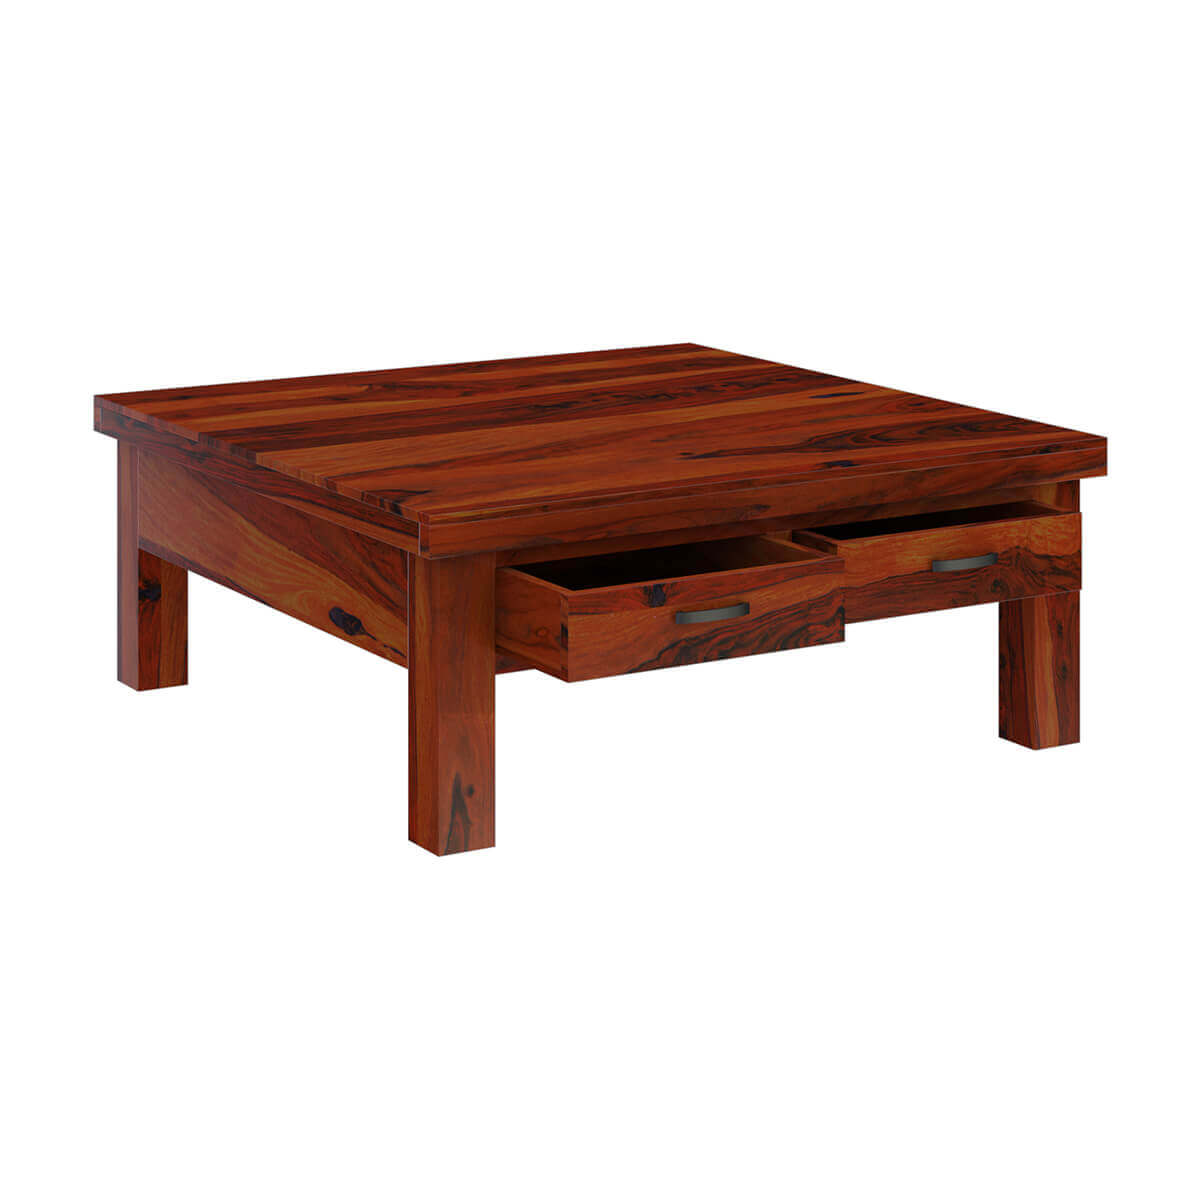 Classic Solid Wood 4 Drawers Square Storage Coffee Table